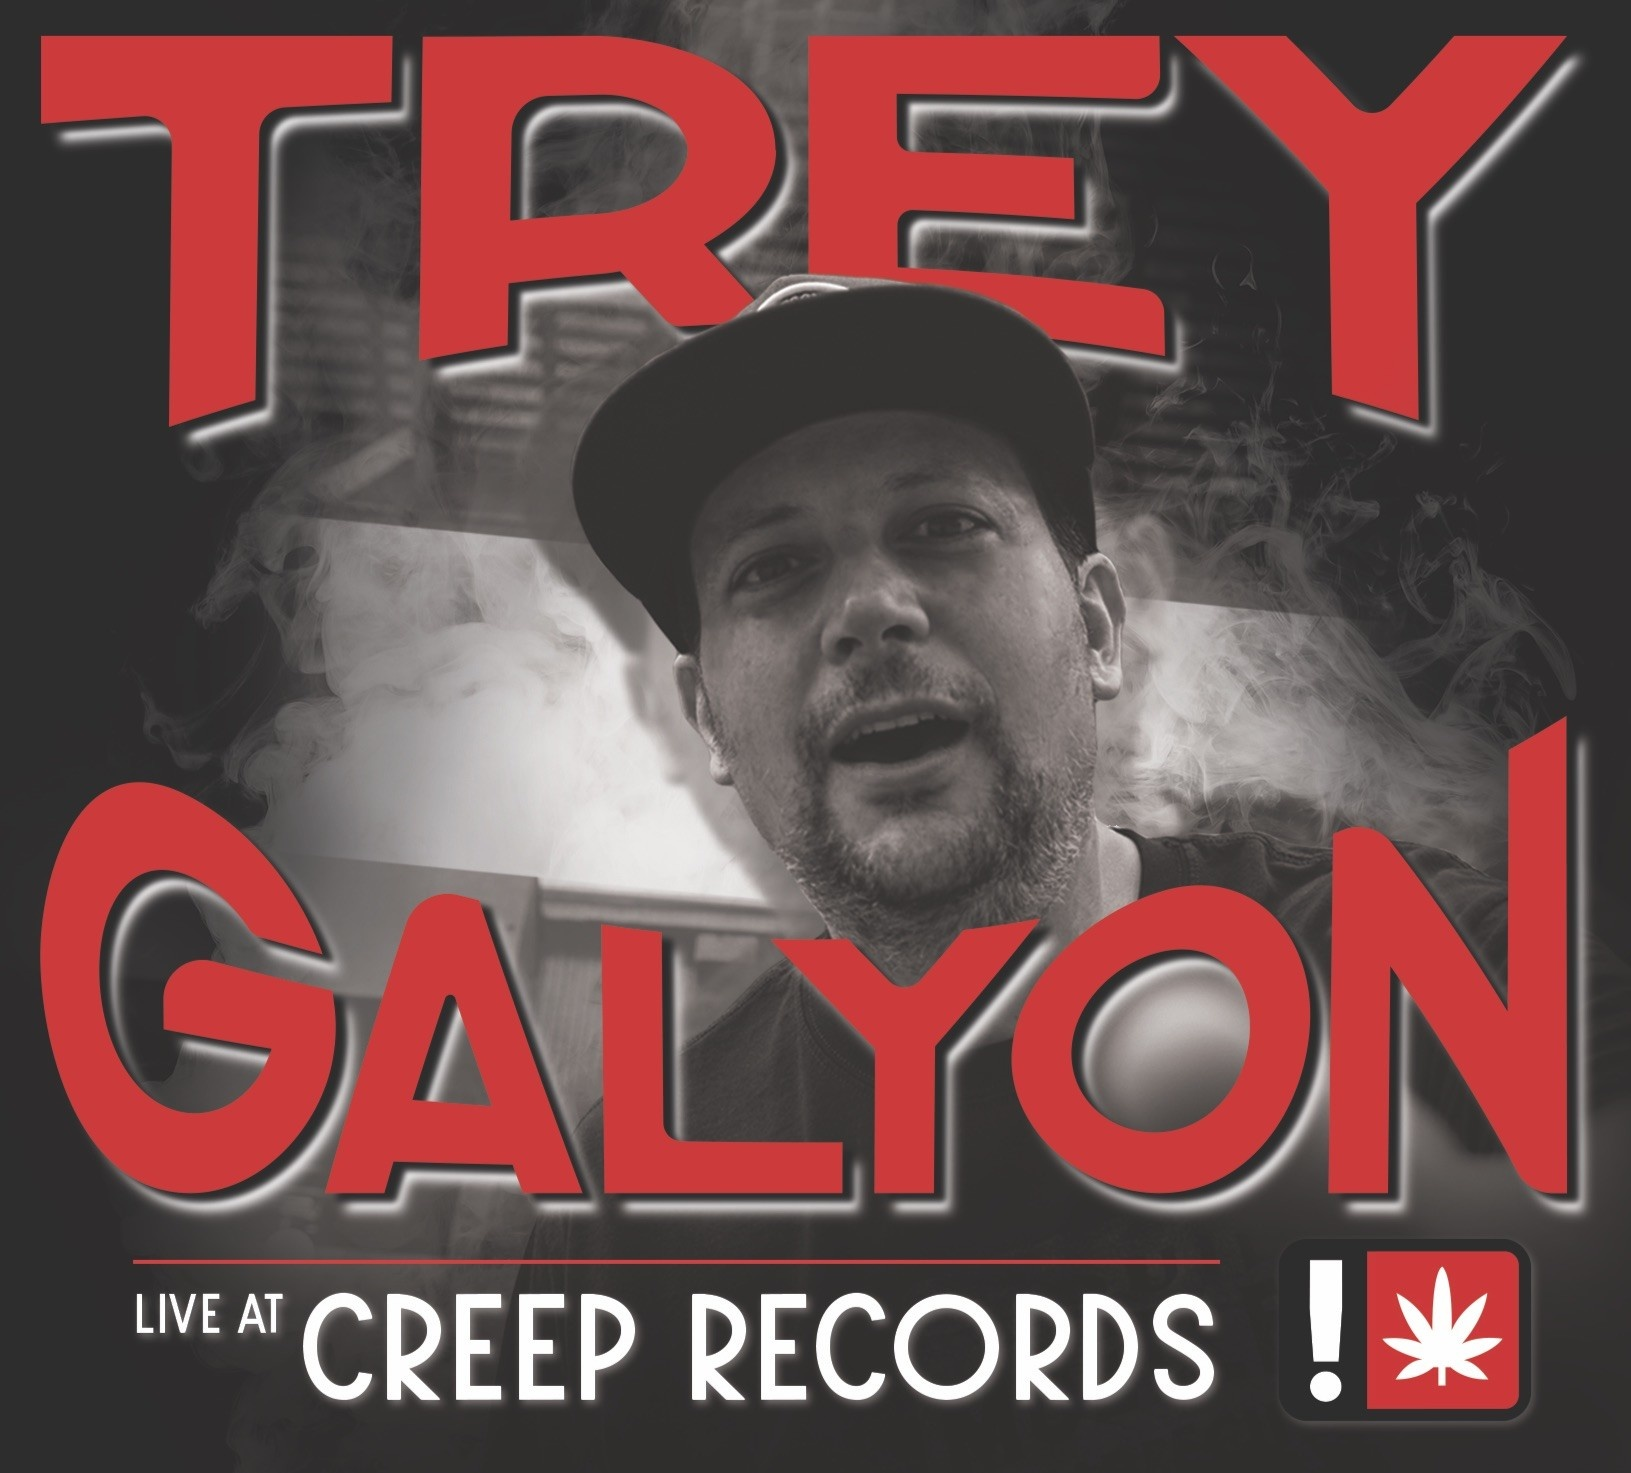 Trey Galyon - Live at Creep Records CD